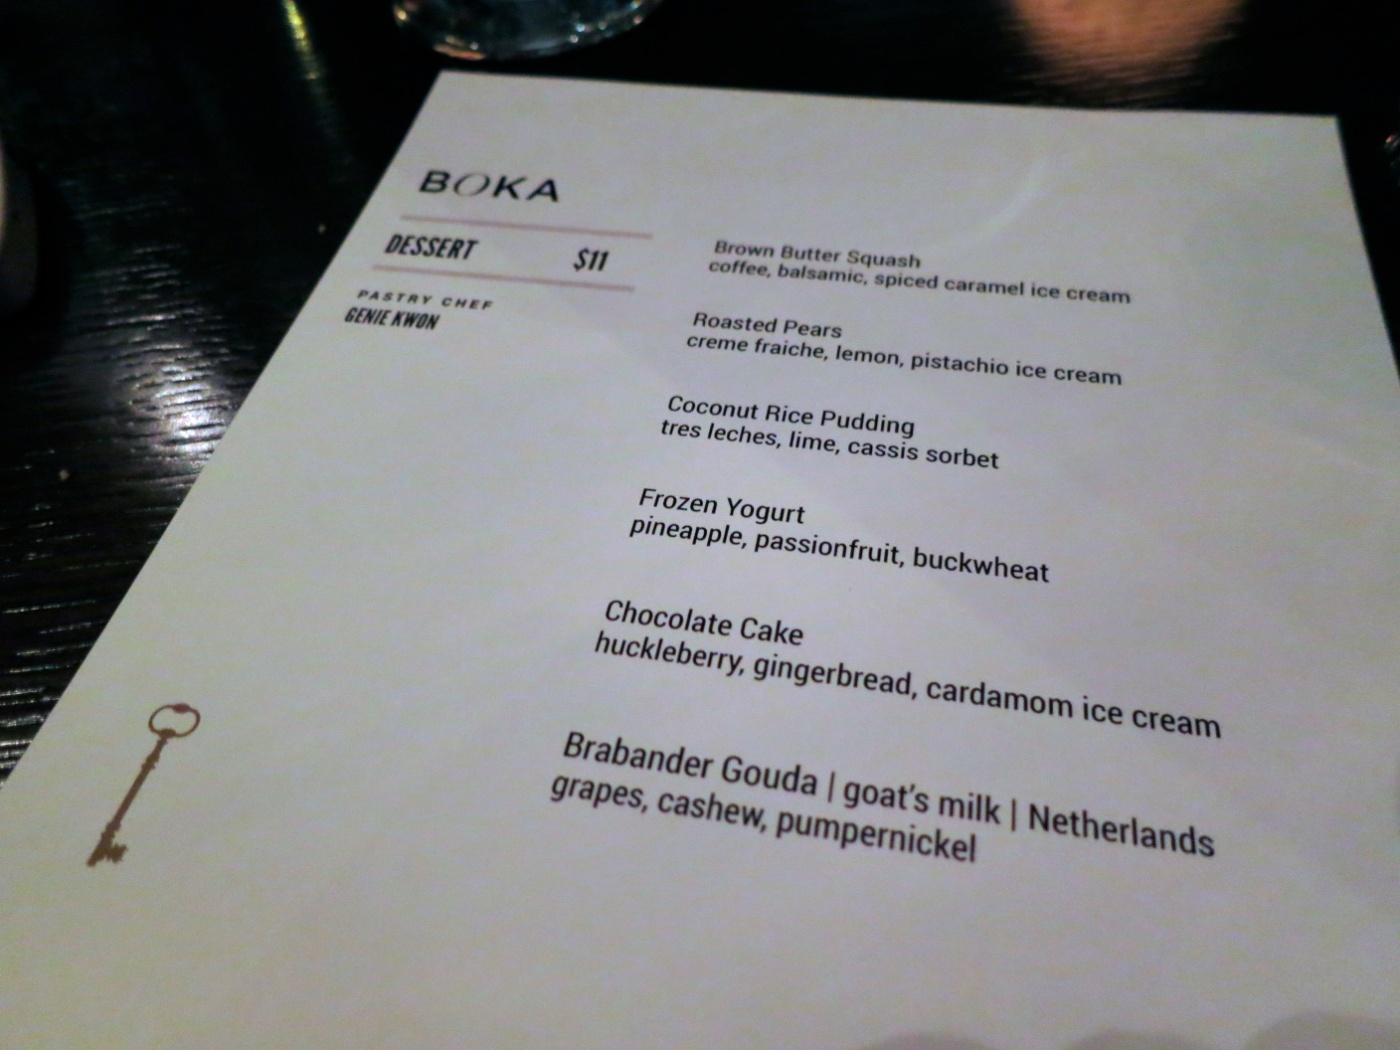 Dessert menu at Boka